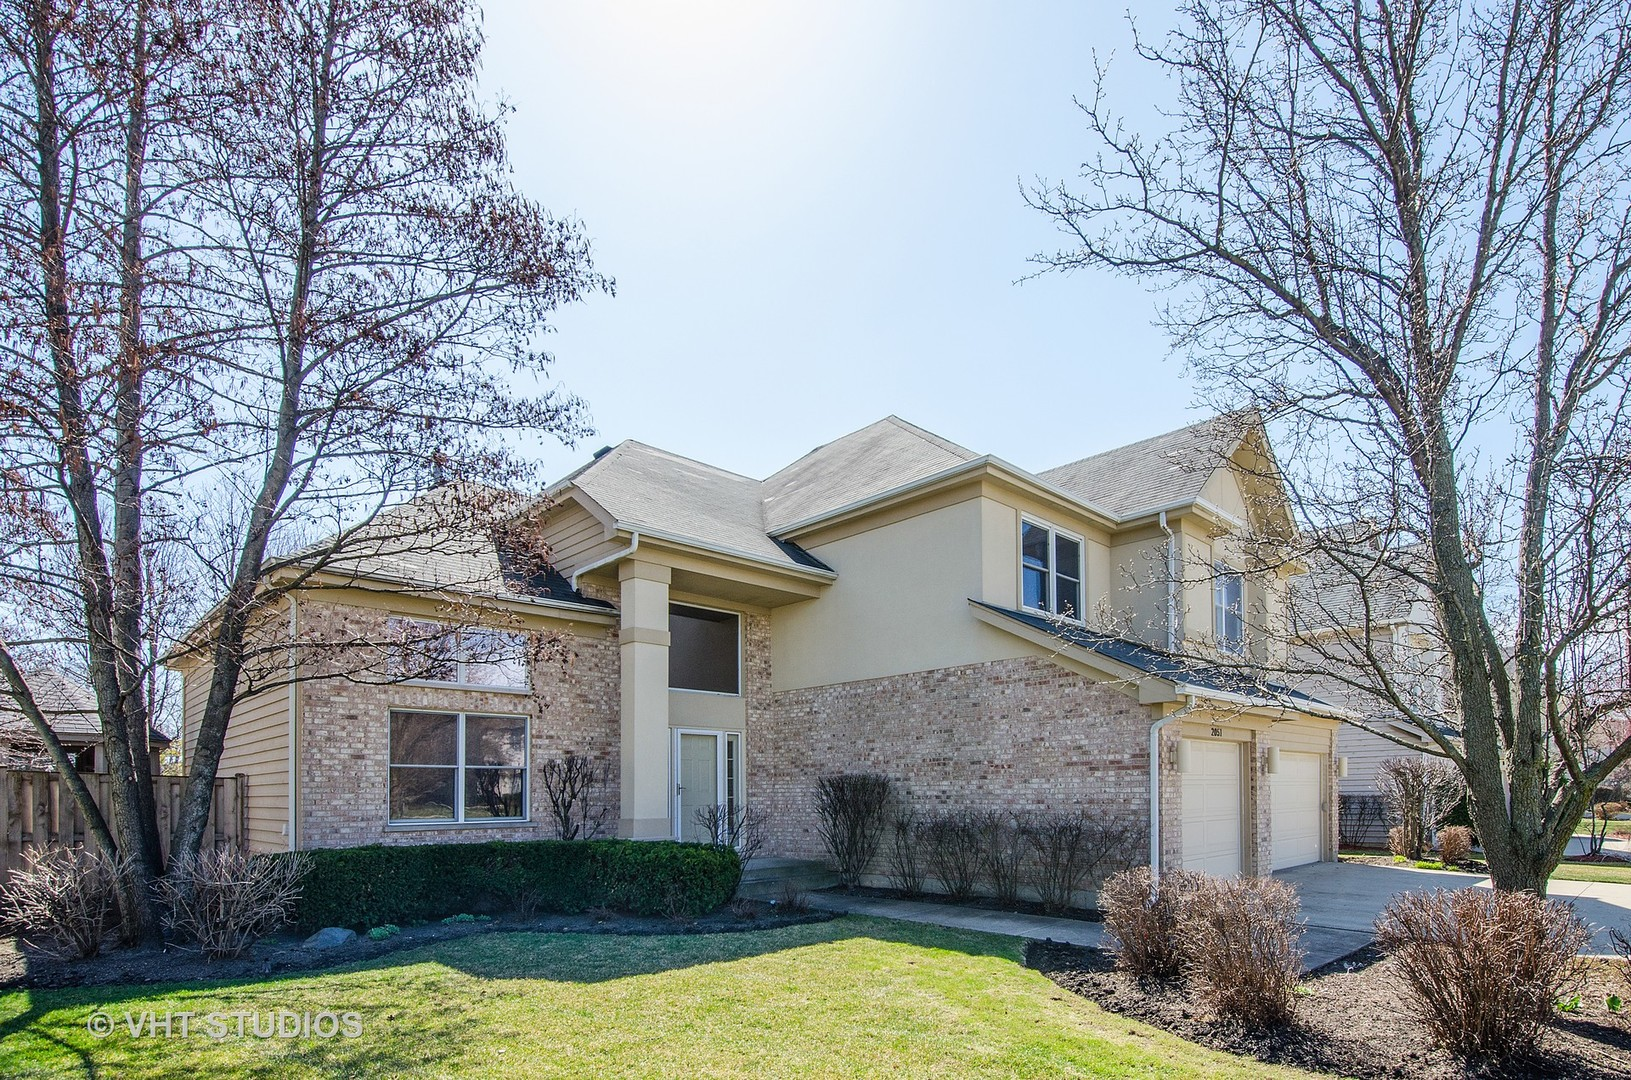 2051 JORDAN TERRACE, BUFFALO GROVE, IL 60089